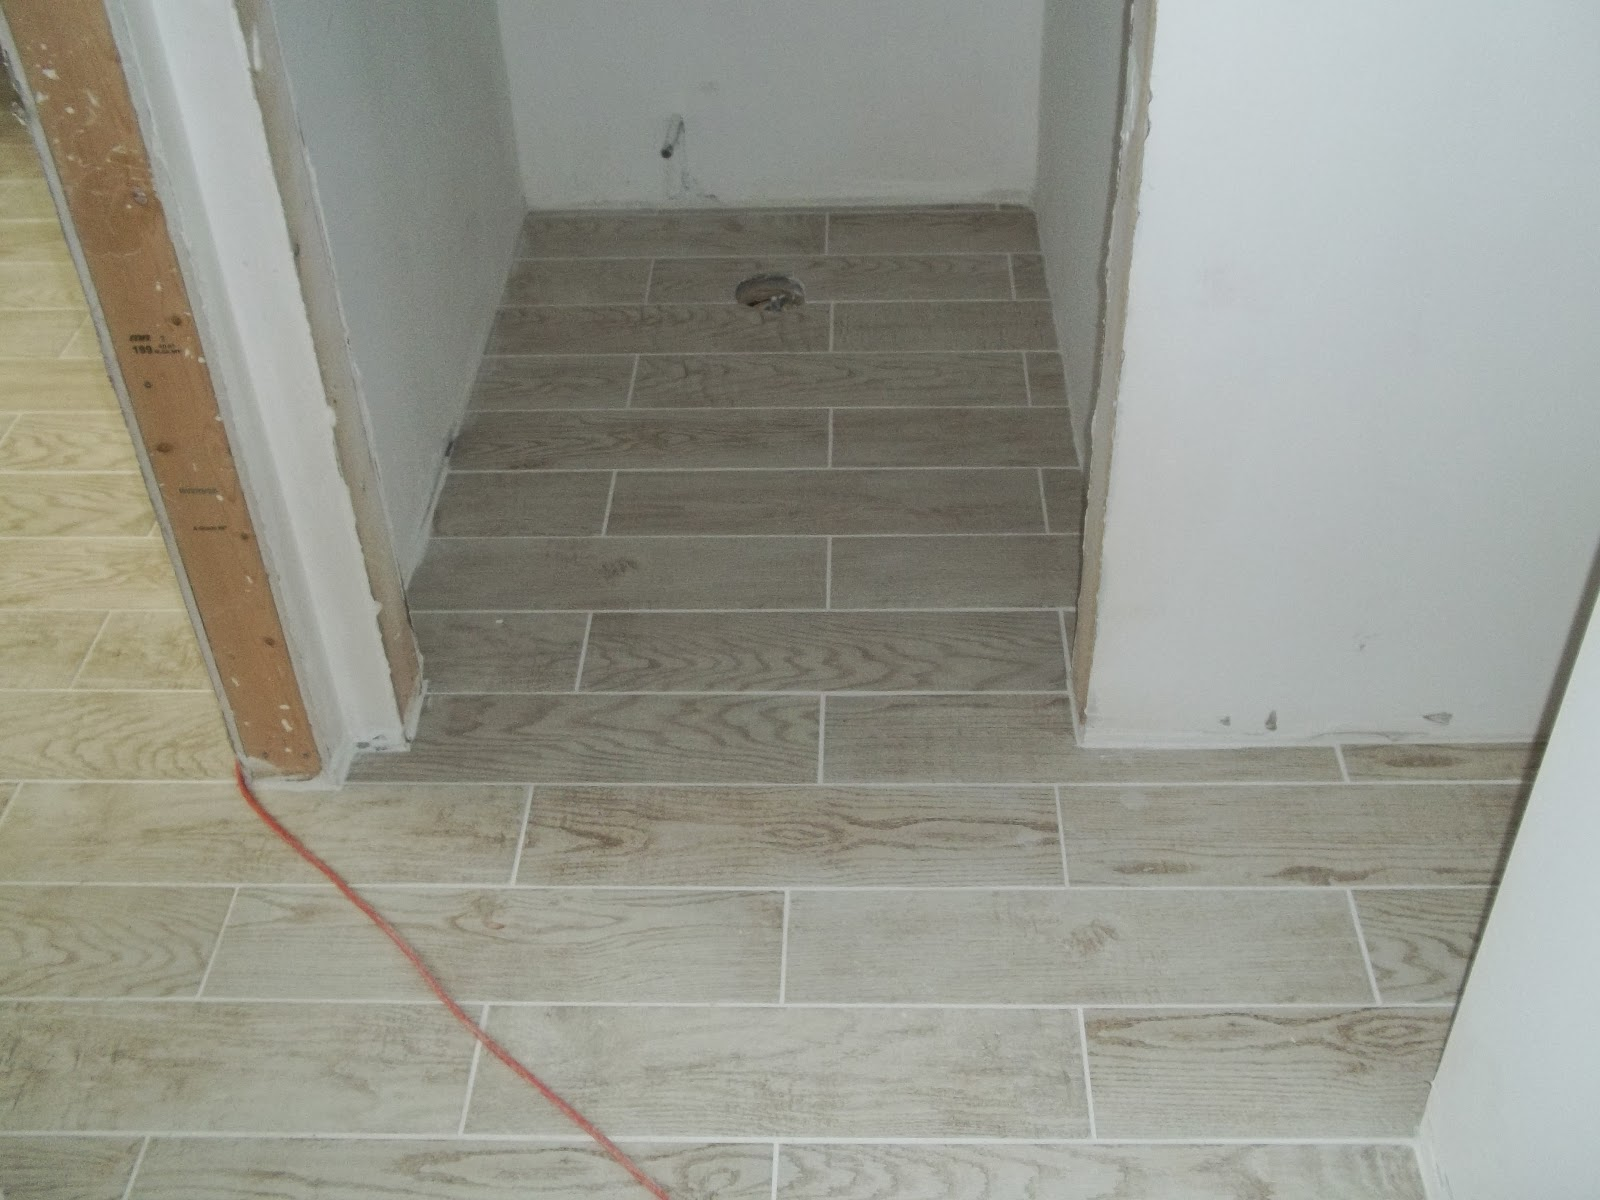 Diy consumer tile installation and repair blog broke joint floor tile using a 316 grout joint and sanded grout dailygadgetfo Image collections